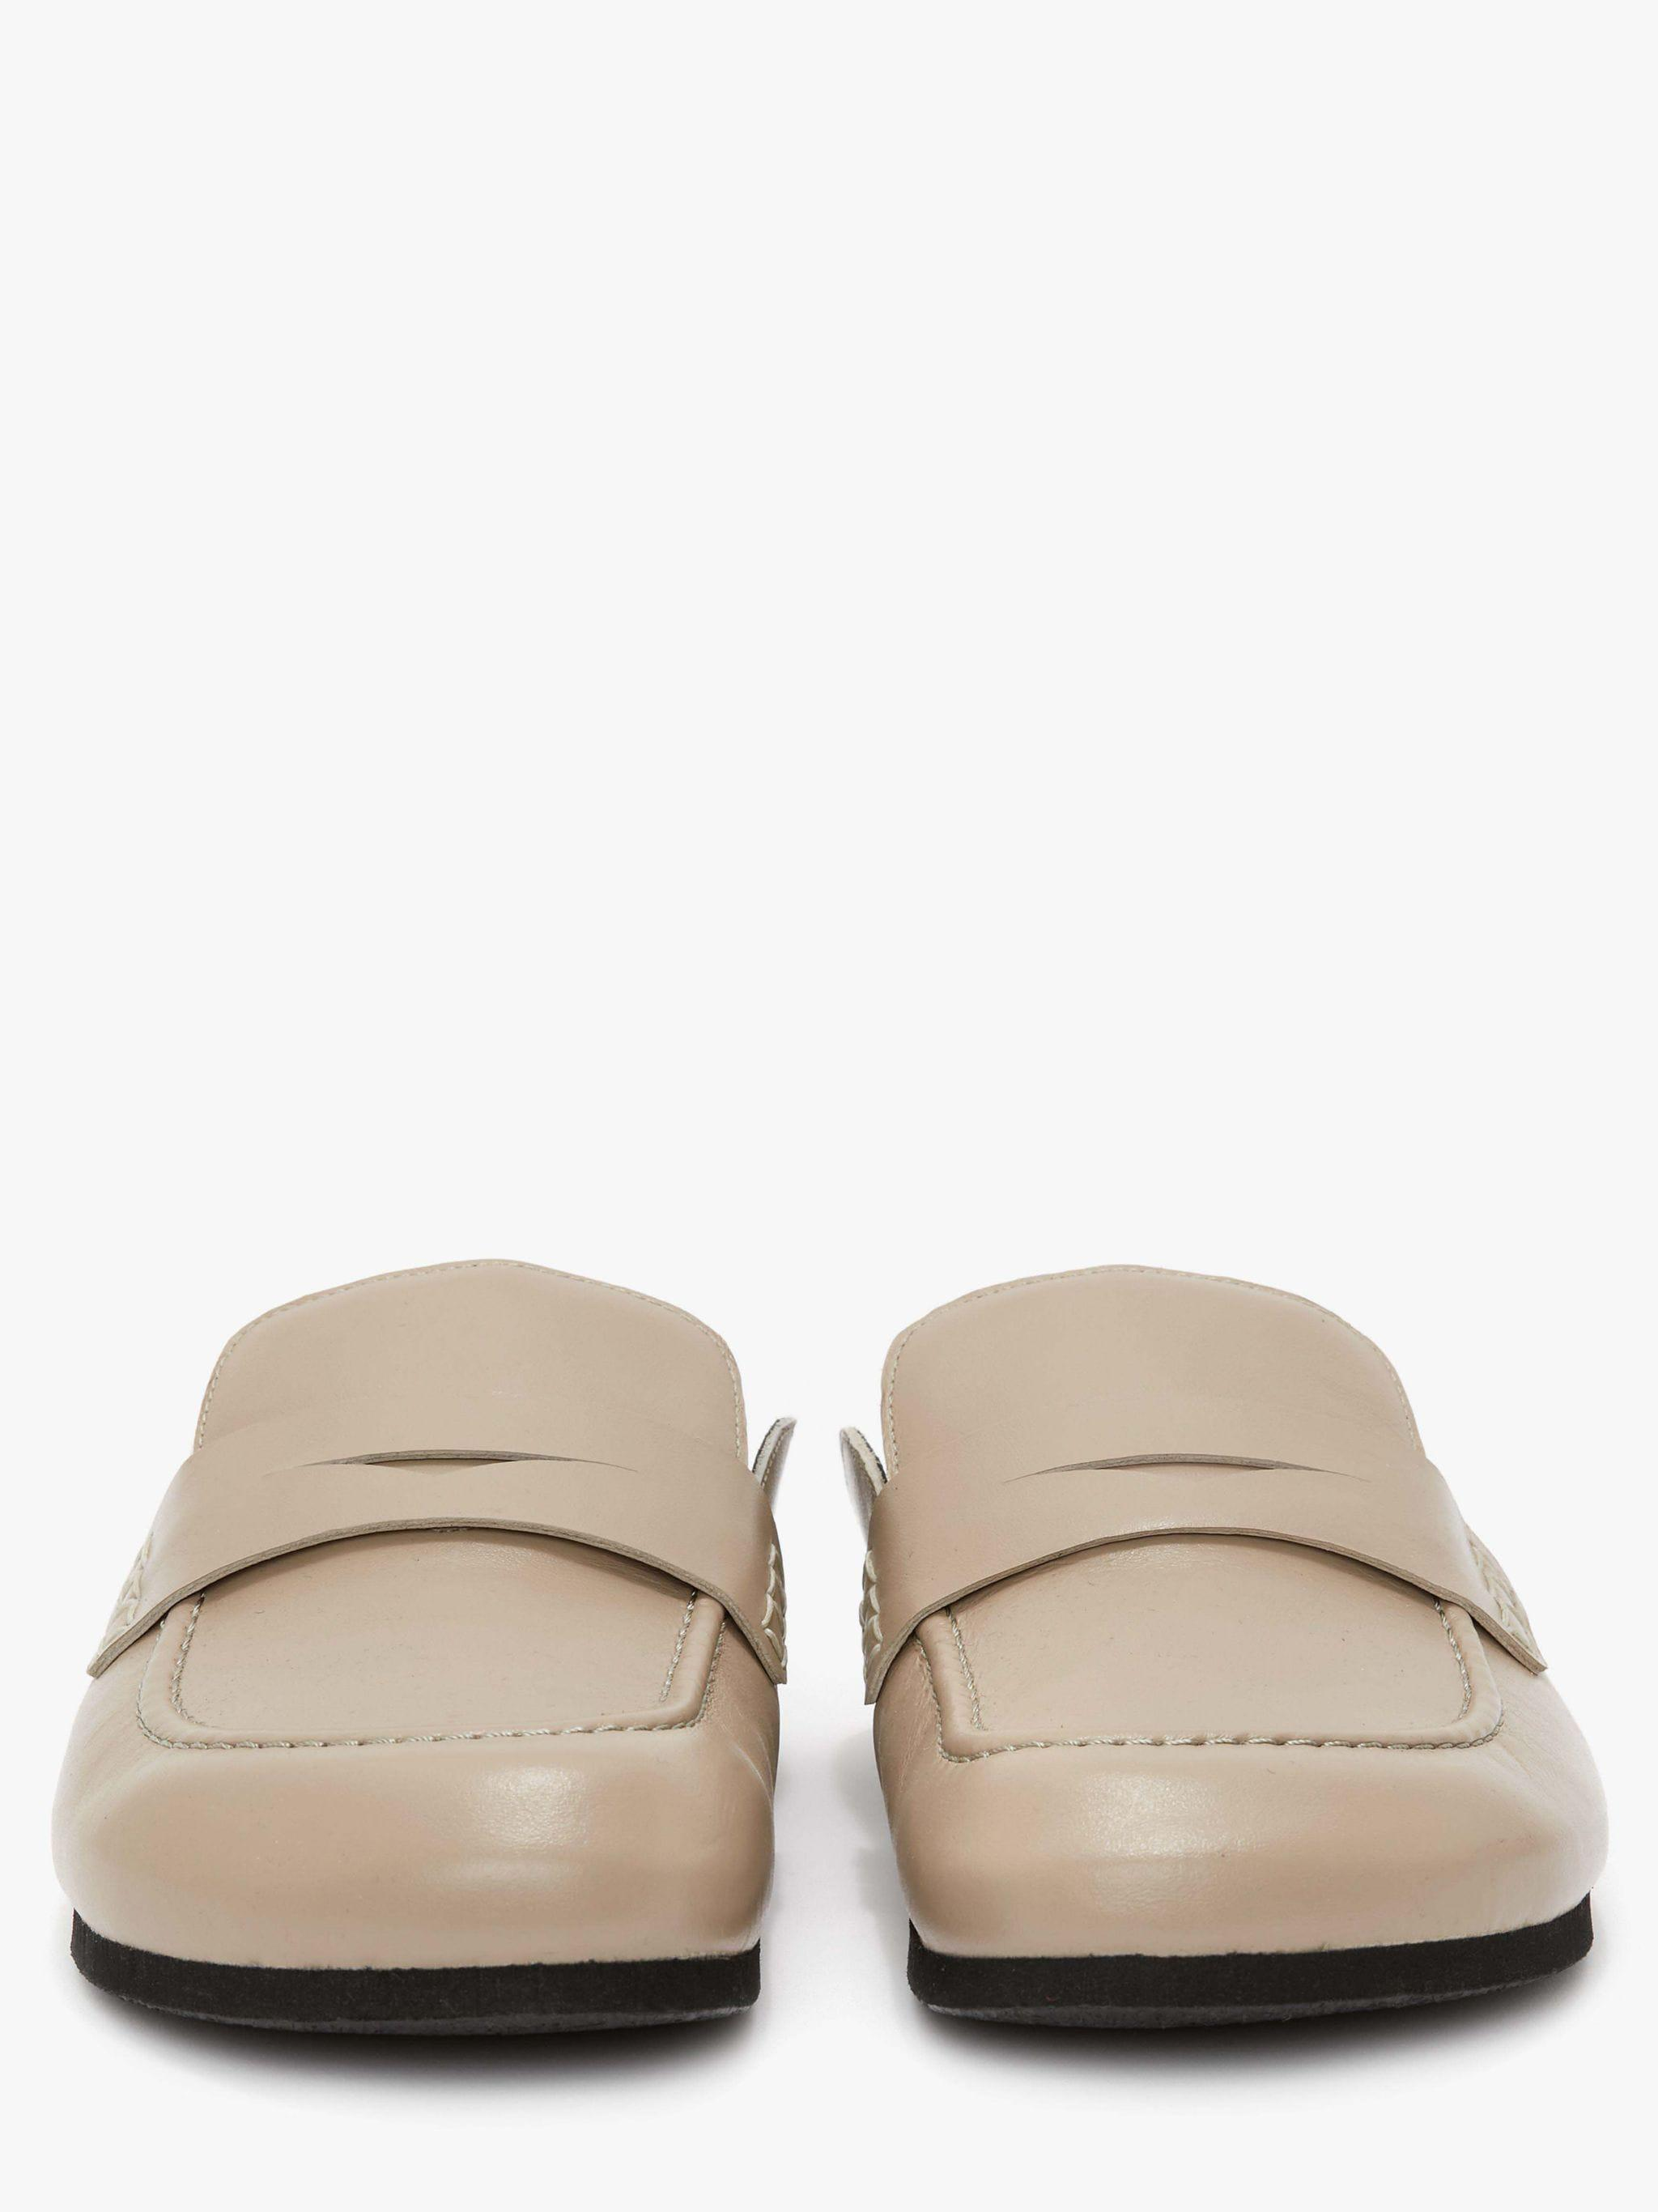 WOMEN'S LEATHER LOAFER MULES 2